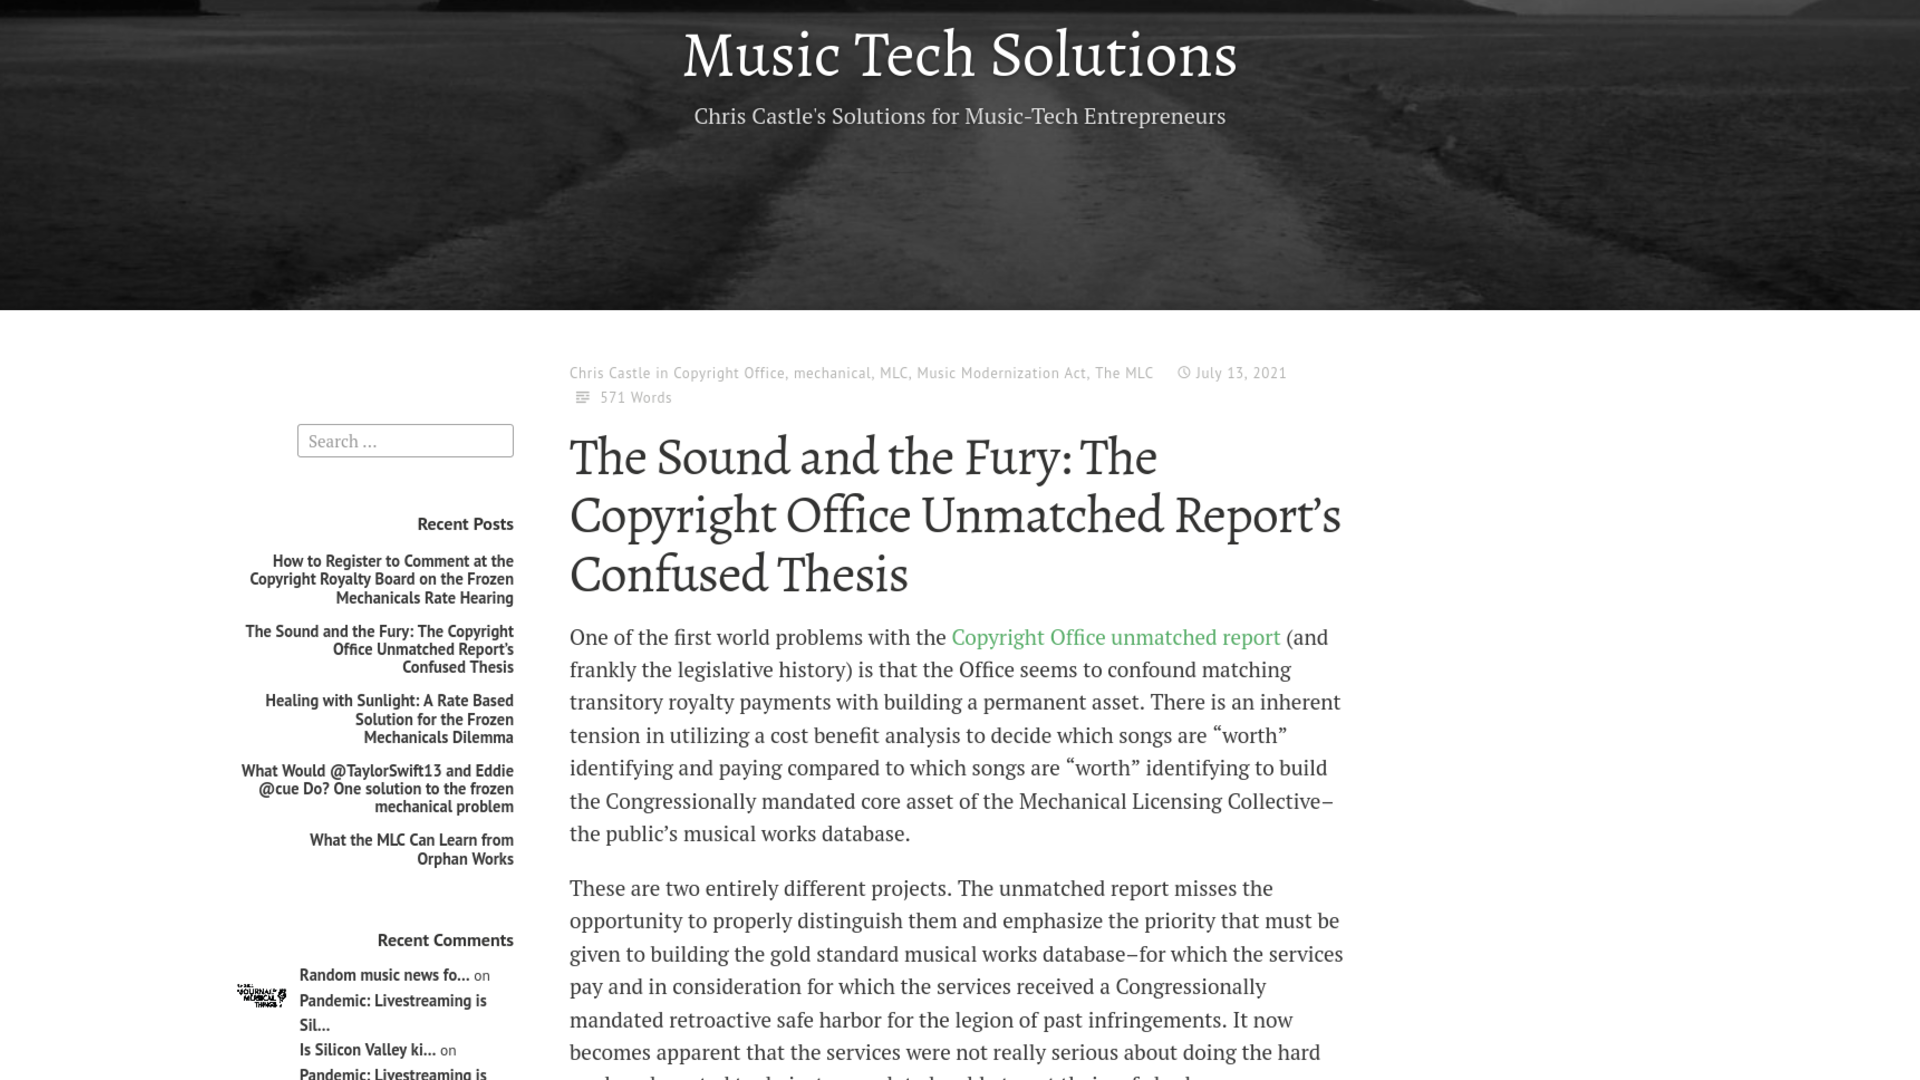 Fairness Rocks News The Sound and the Fury: The Copyright Office Unmatched Report's Confused Thesis